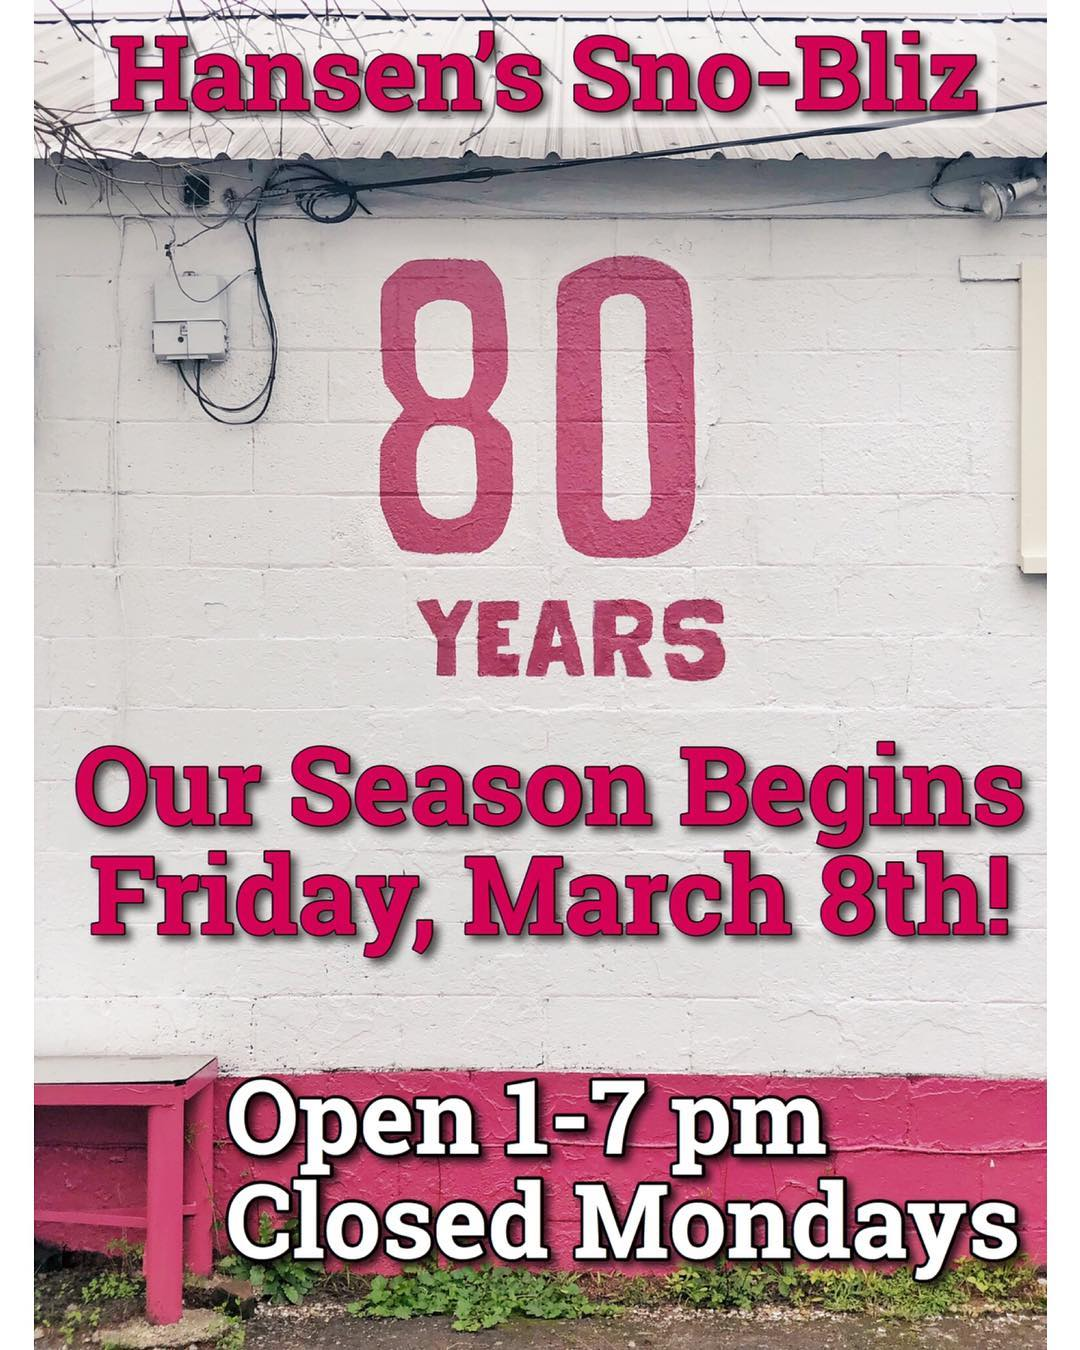 We can't wait to welcome you back to Tchoupitoulas Street starting tomorrow — this Friday — for our 80th anniversary season of snoballs!